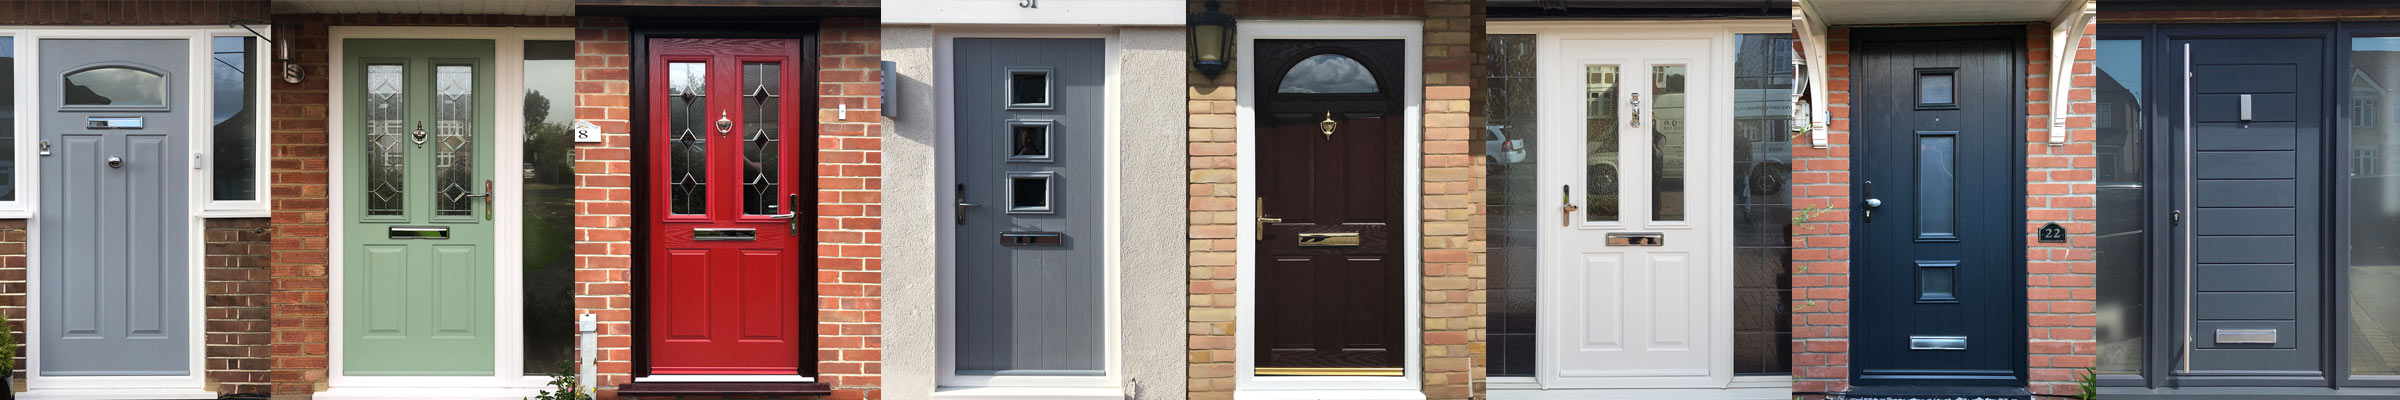 Doors, Windows, Orangeries, Roofs, Extensions, Sovereign Home, Essex - HOME PAGE - v2 (12)